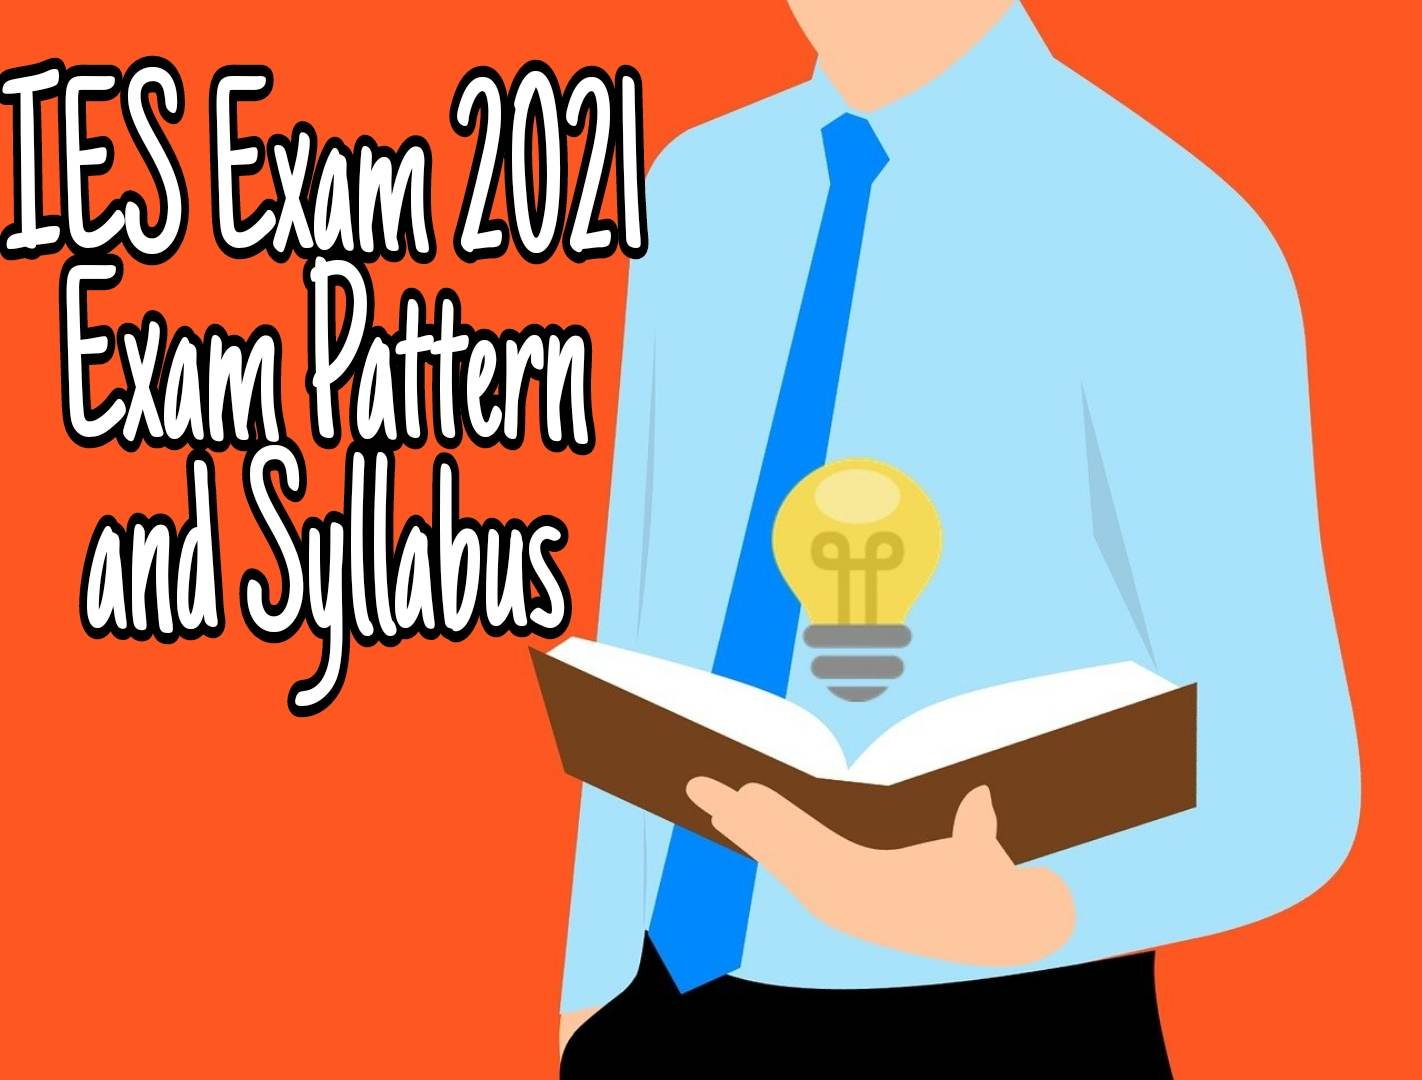 IES Exam 2021 Exam Pattern and Syllabus